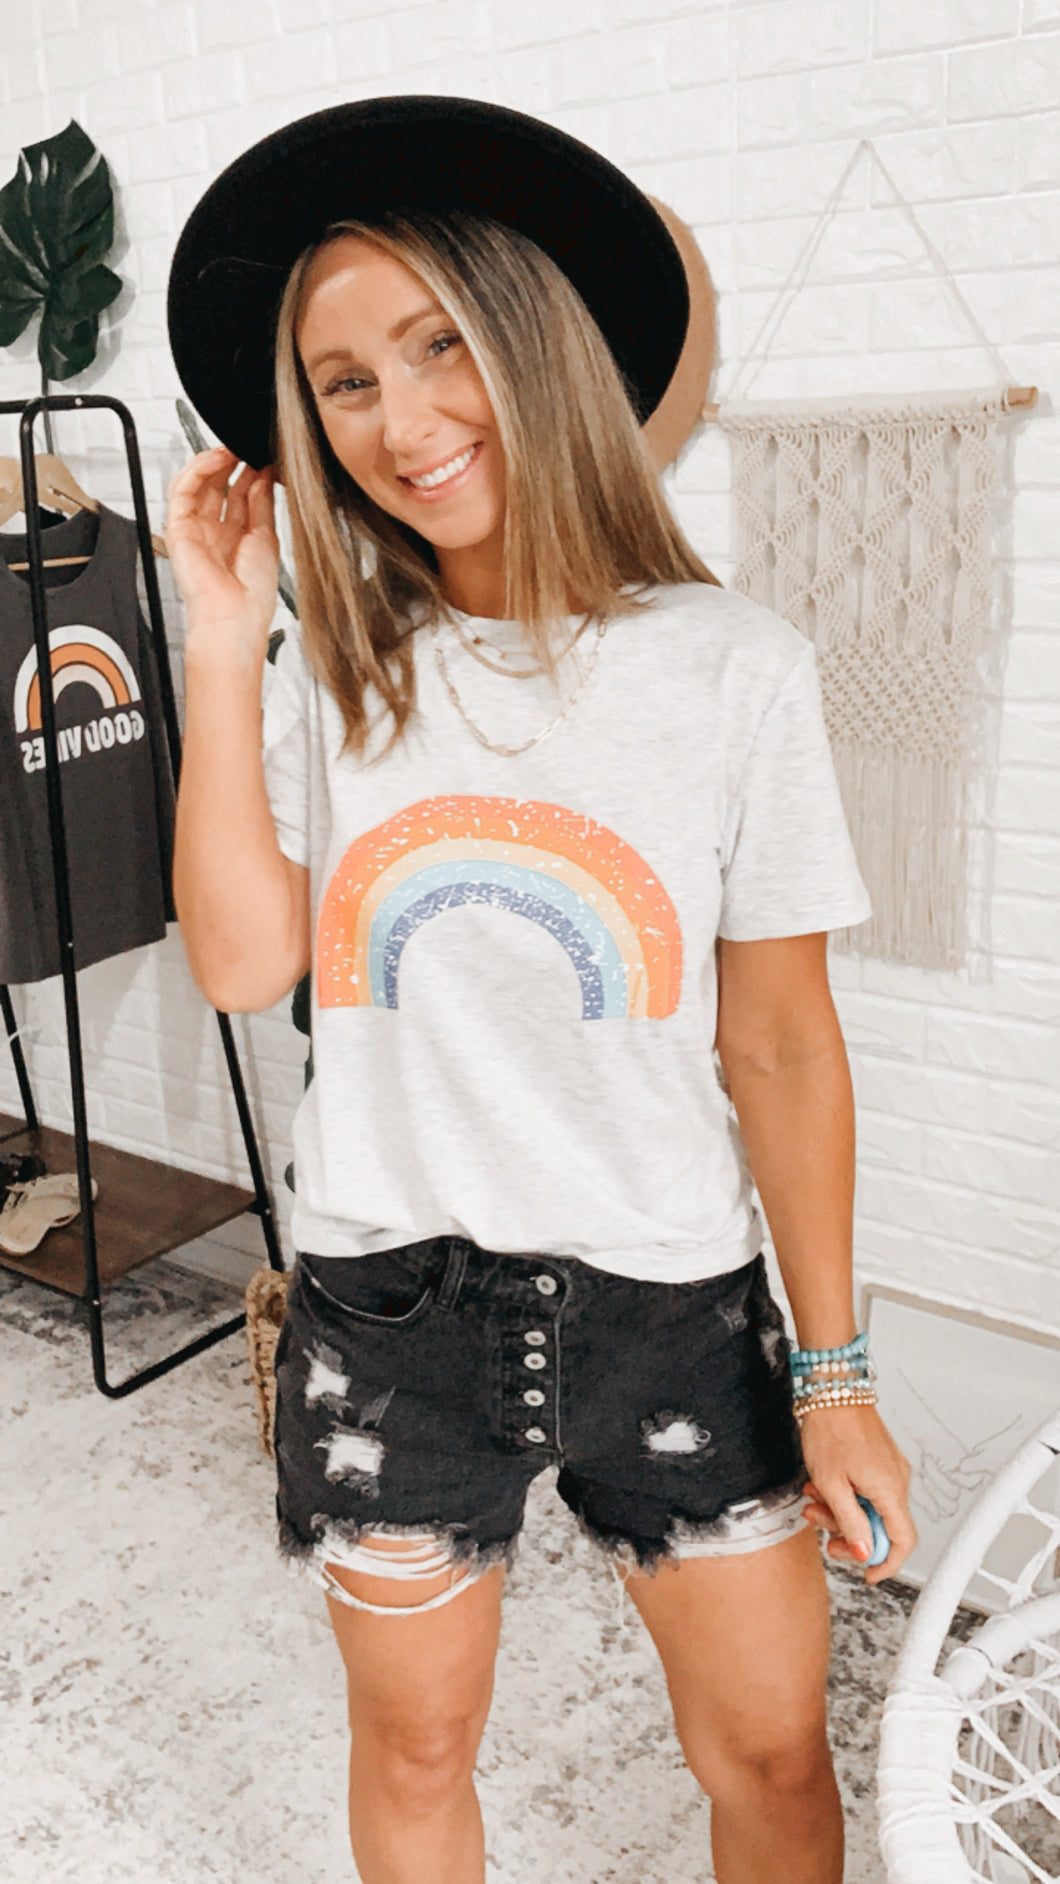 Naomi Vintage Over The Rainbow Tee, Free Shipping!